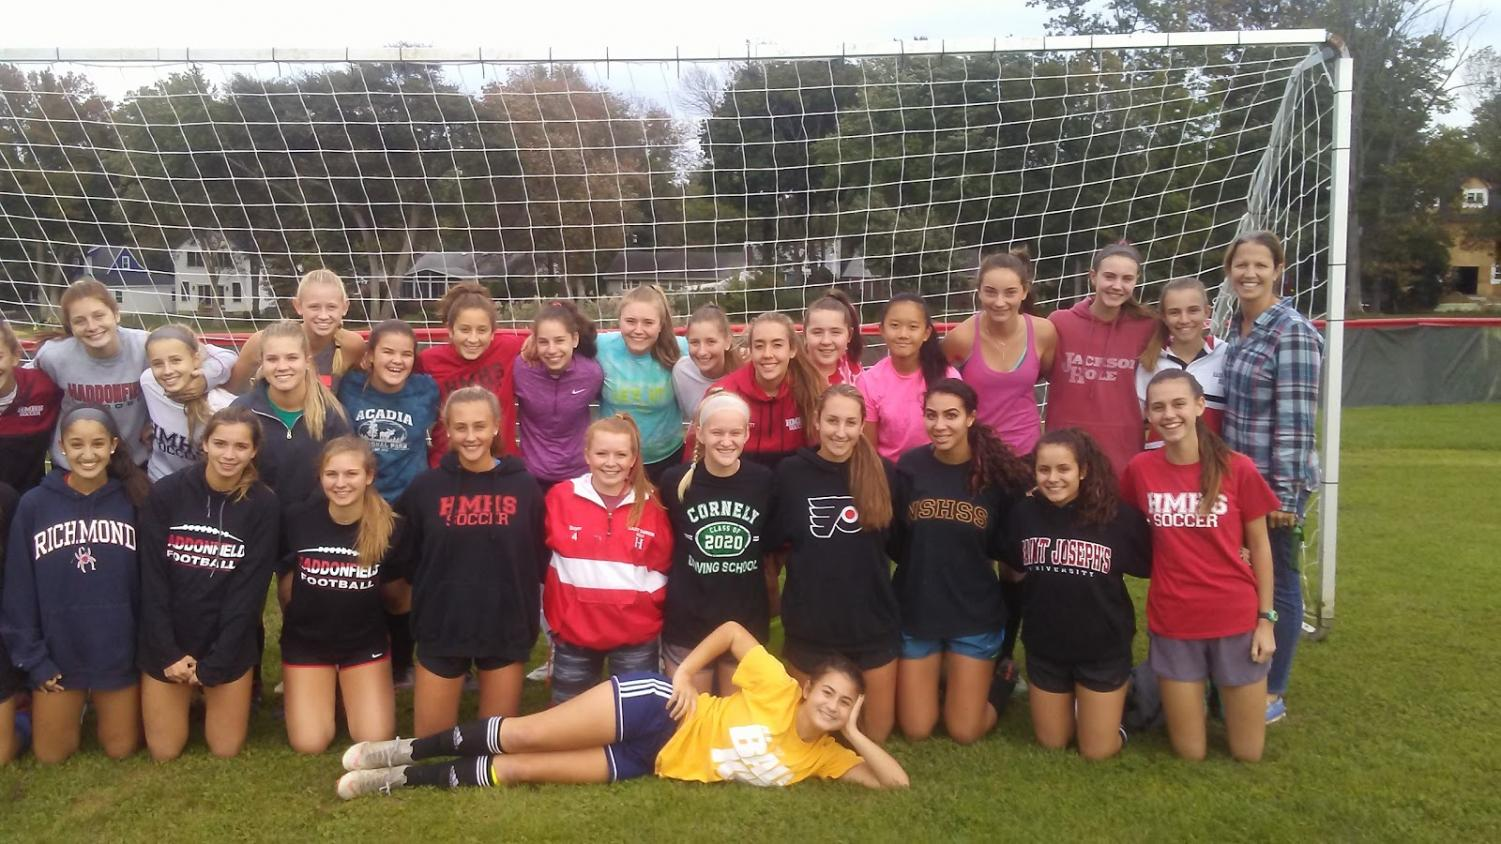 Members of the 2018 HMHS Girls' Soccer Team